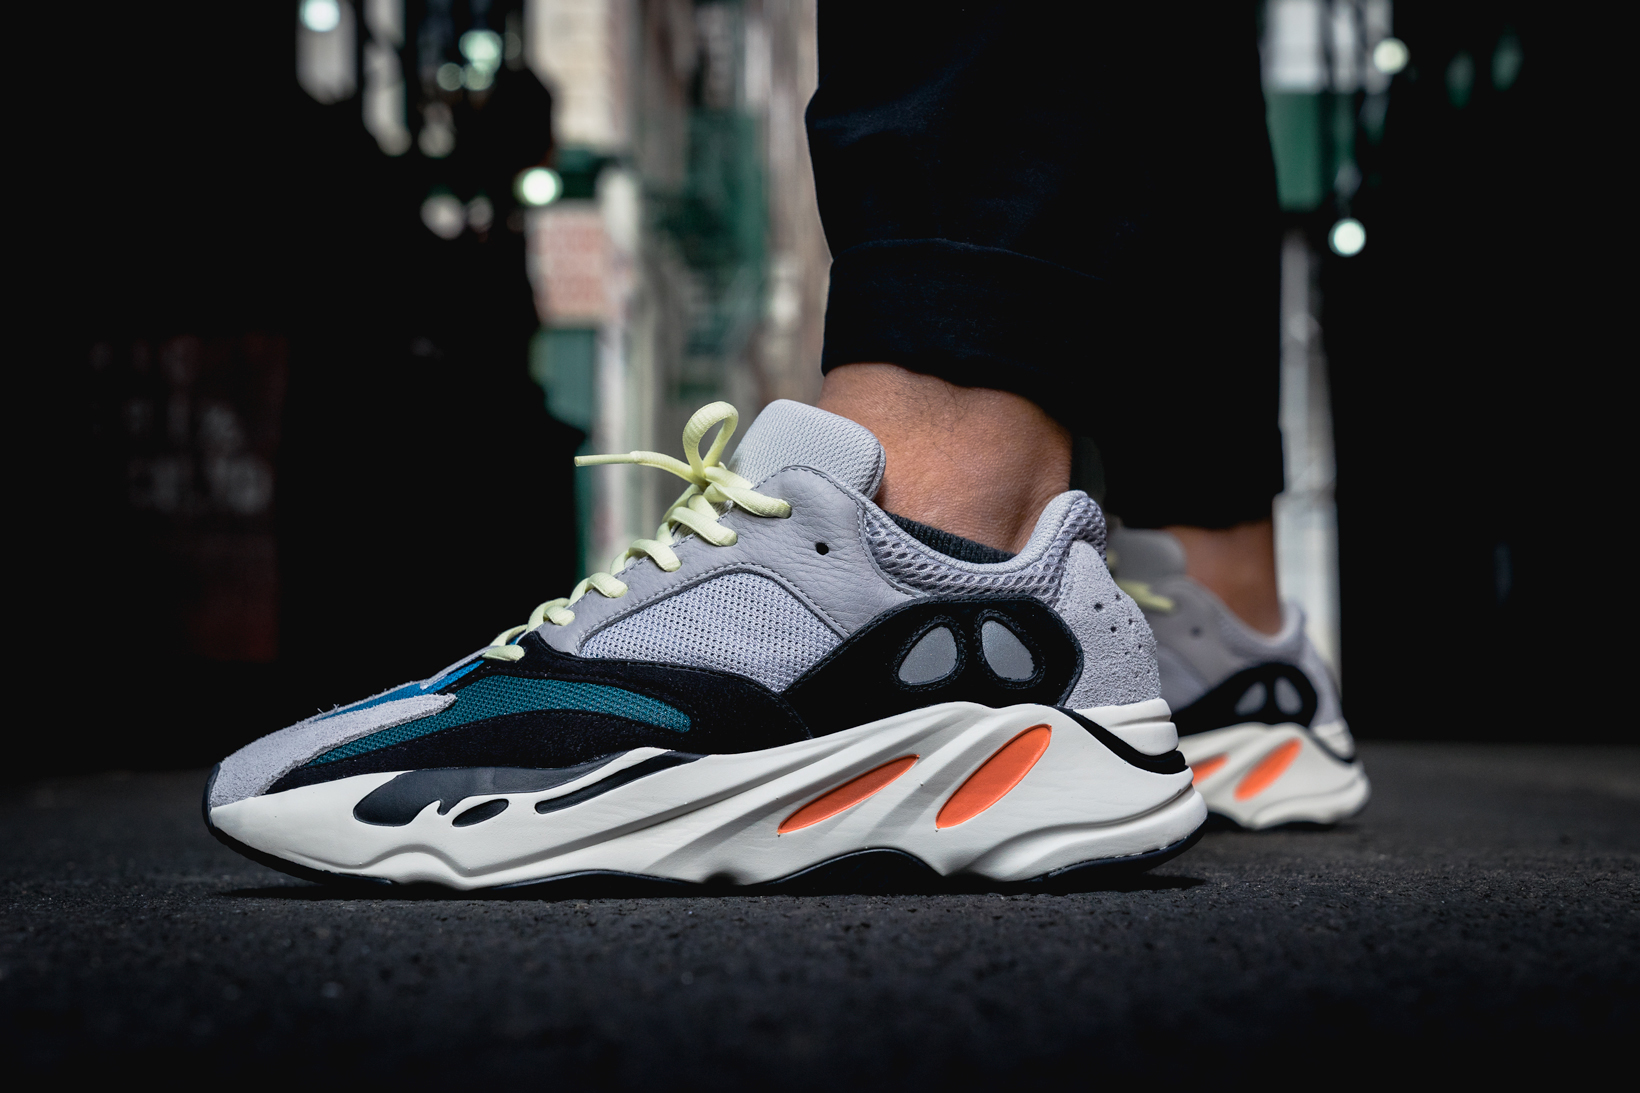 YEEZY 700 Wave Runner Restock Postponed kanye west adidas